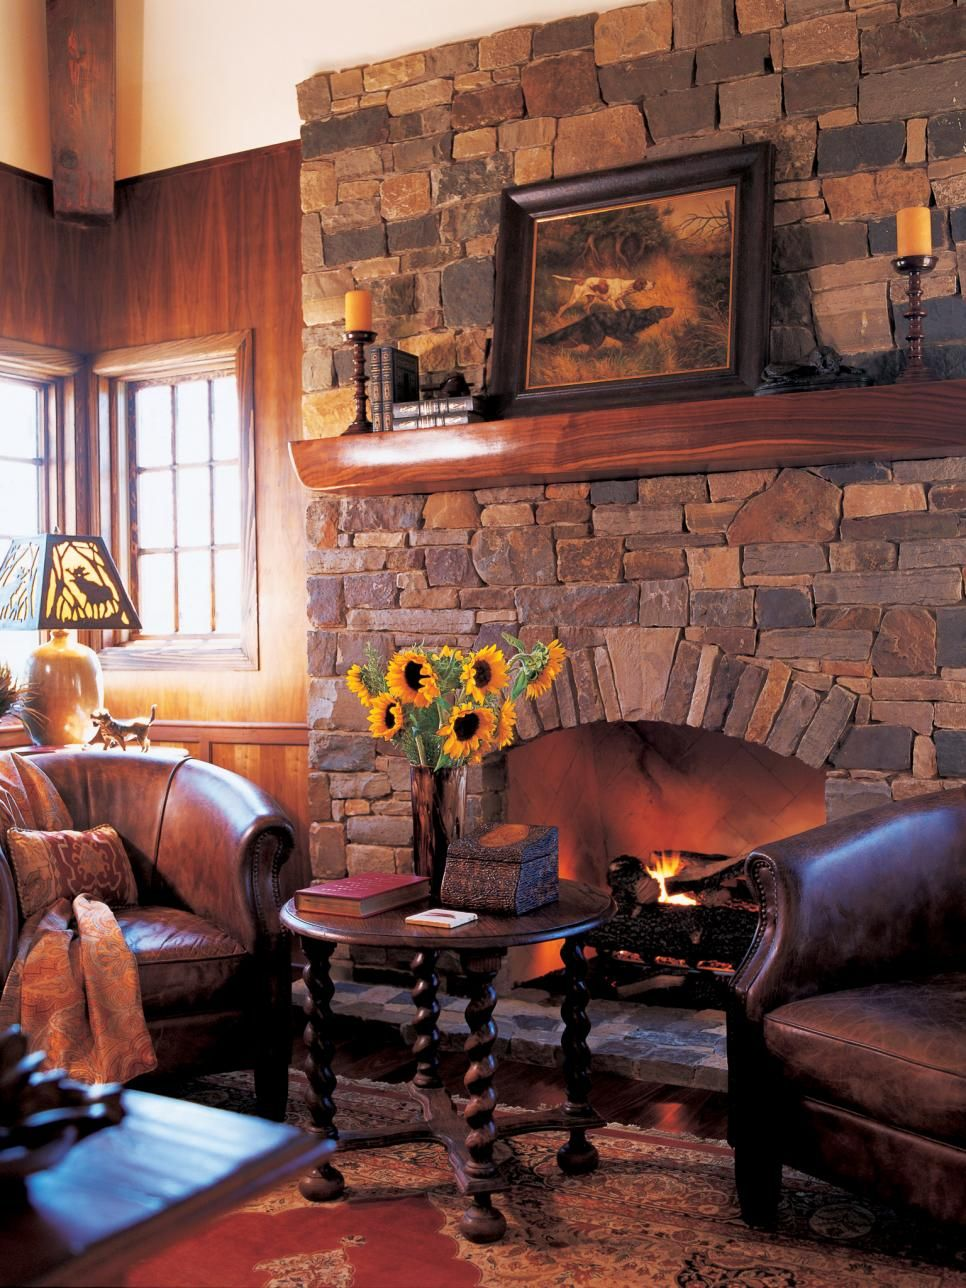 Rustic Sitting Room With Stone Fireplace Cozy Cabin Interior Wood Chair Design Dark Living Rooms